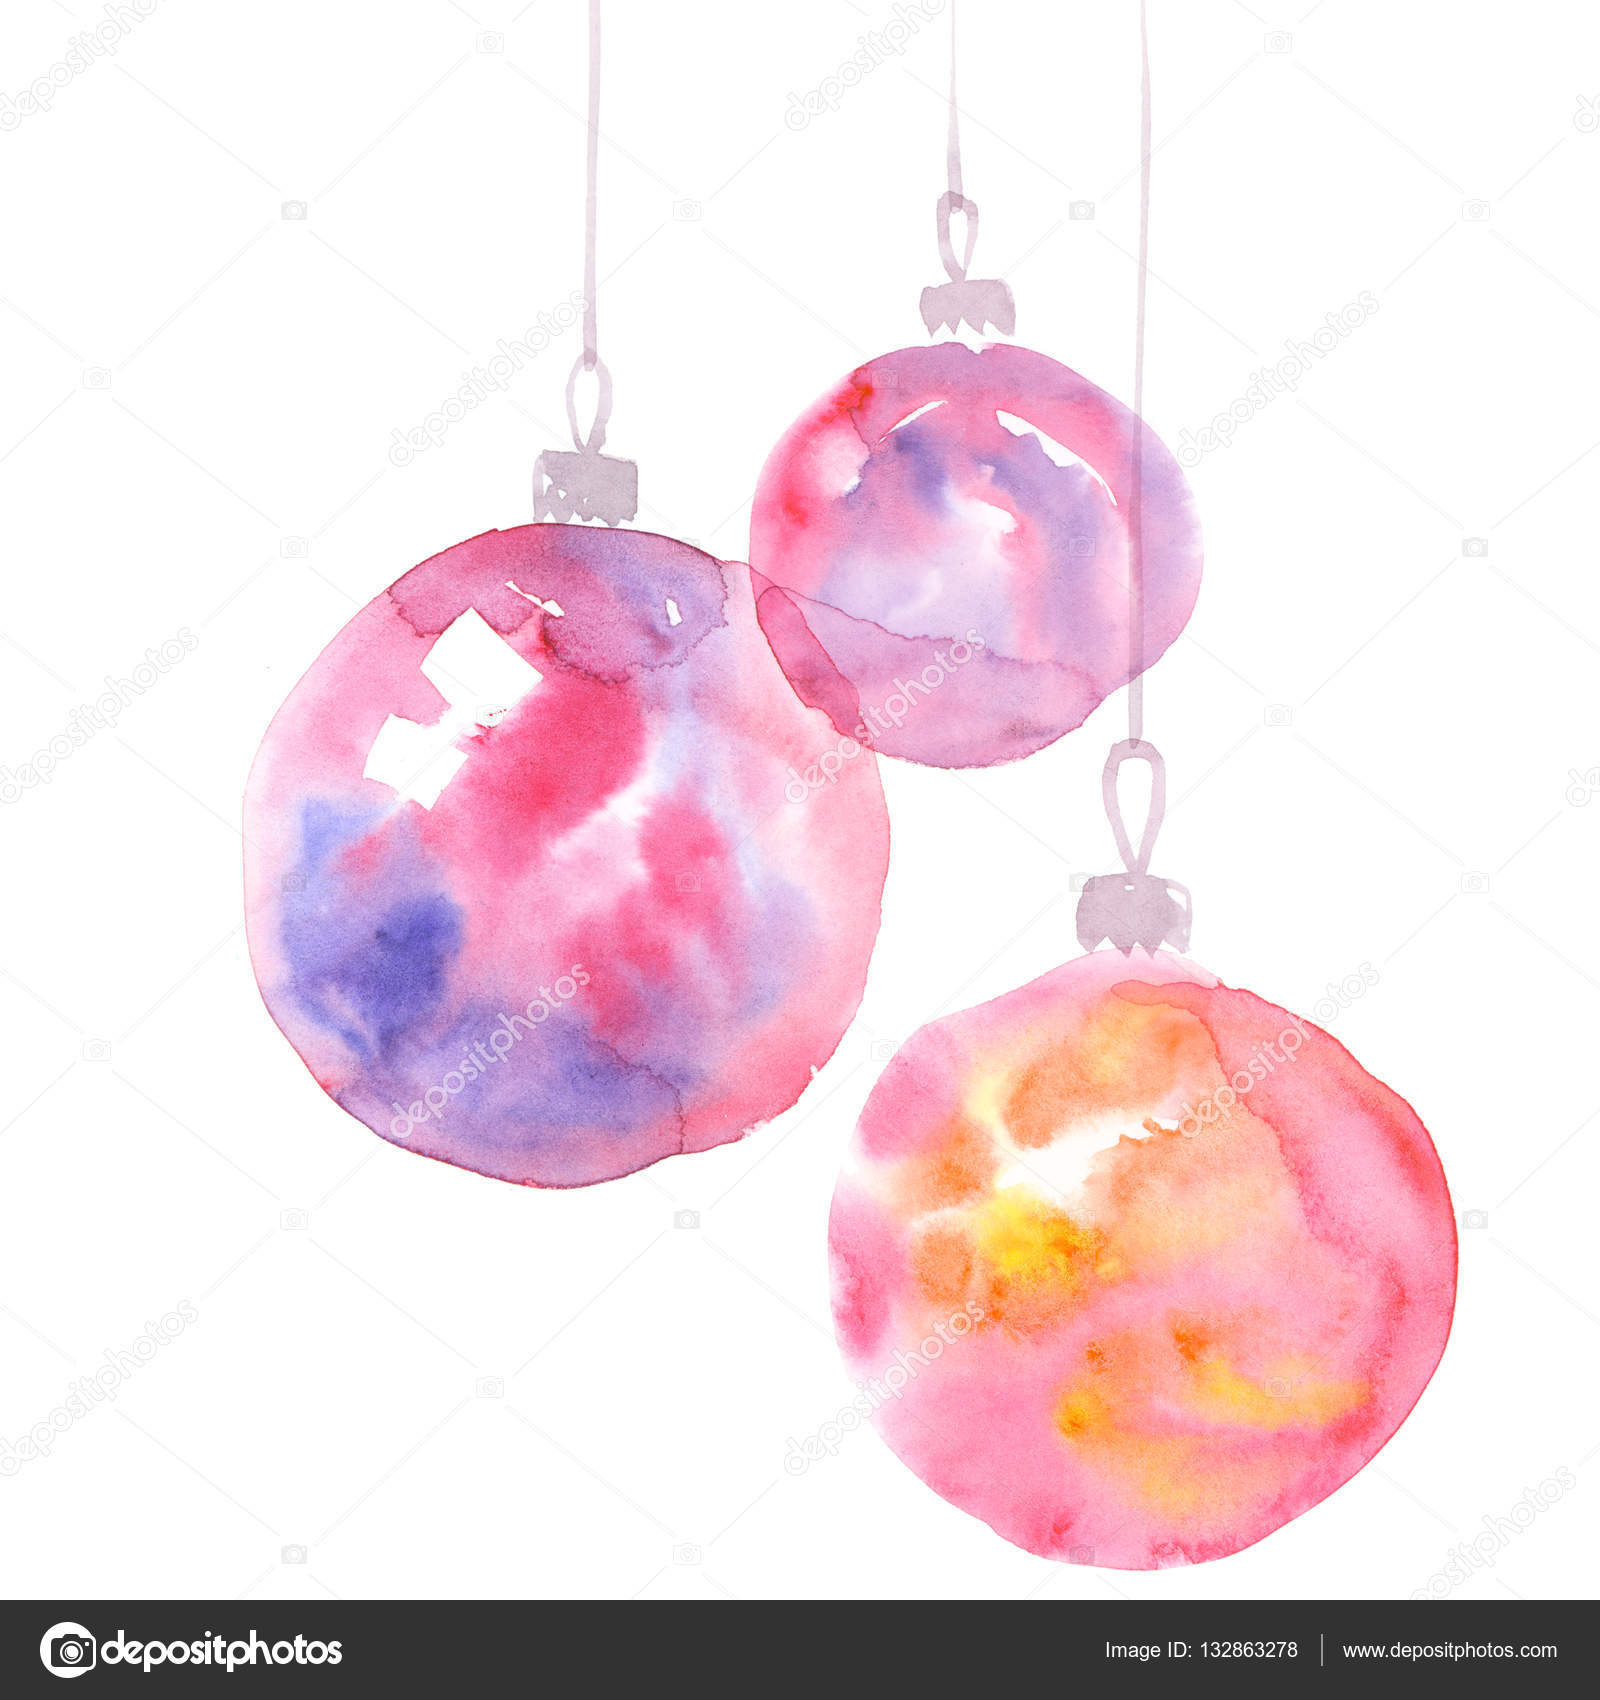 Hand Painted Elegant Xmas Bubbles Decor Cute Simple Christmas Tree Bulbs Decoration Design Element New Tear Decorative Background Photo By Galyna